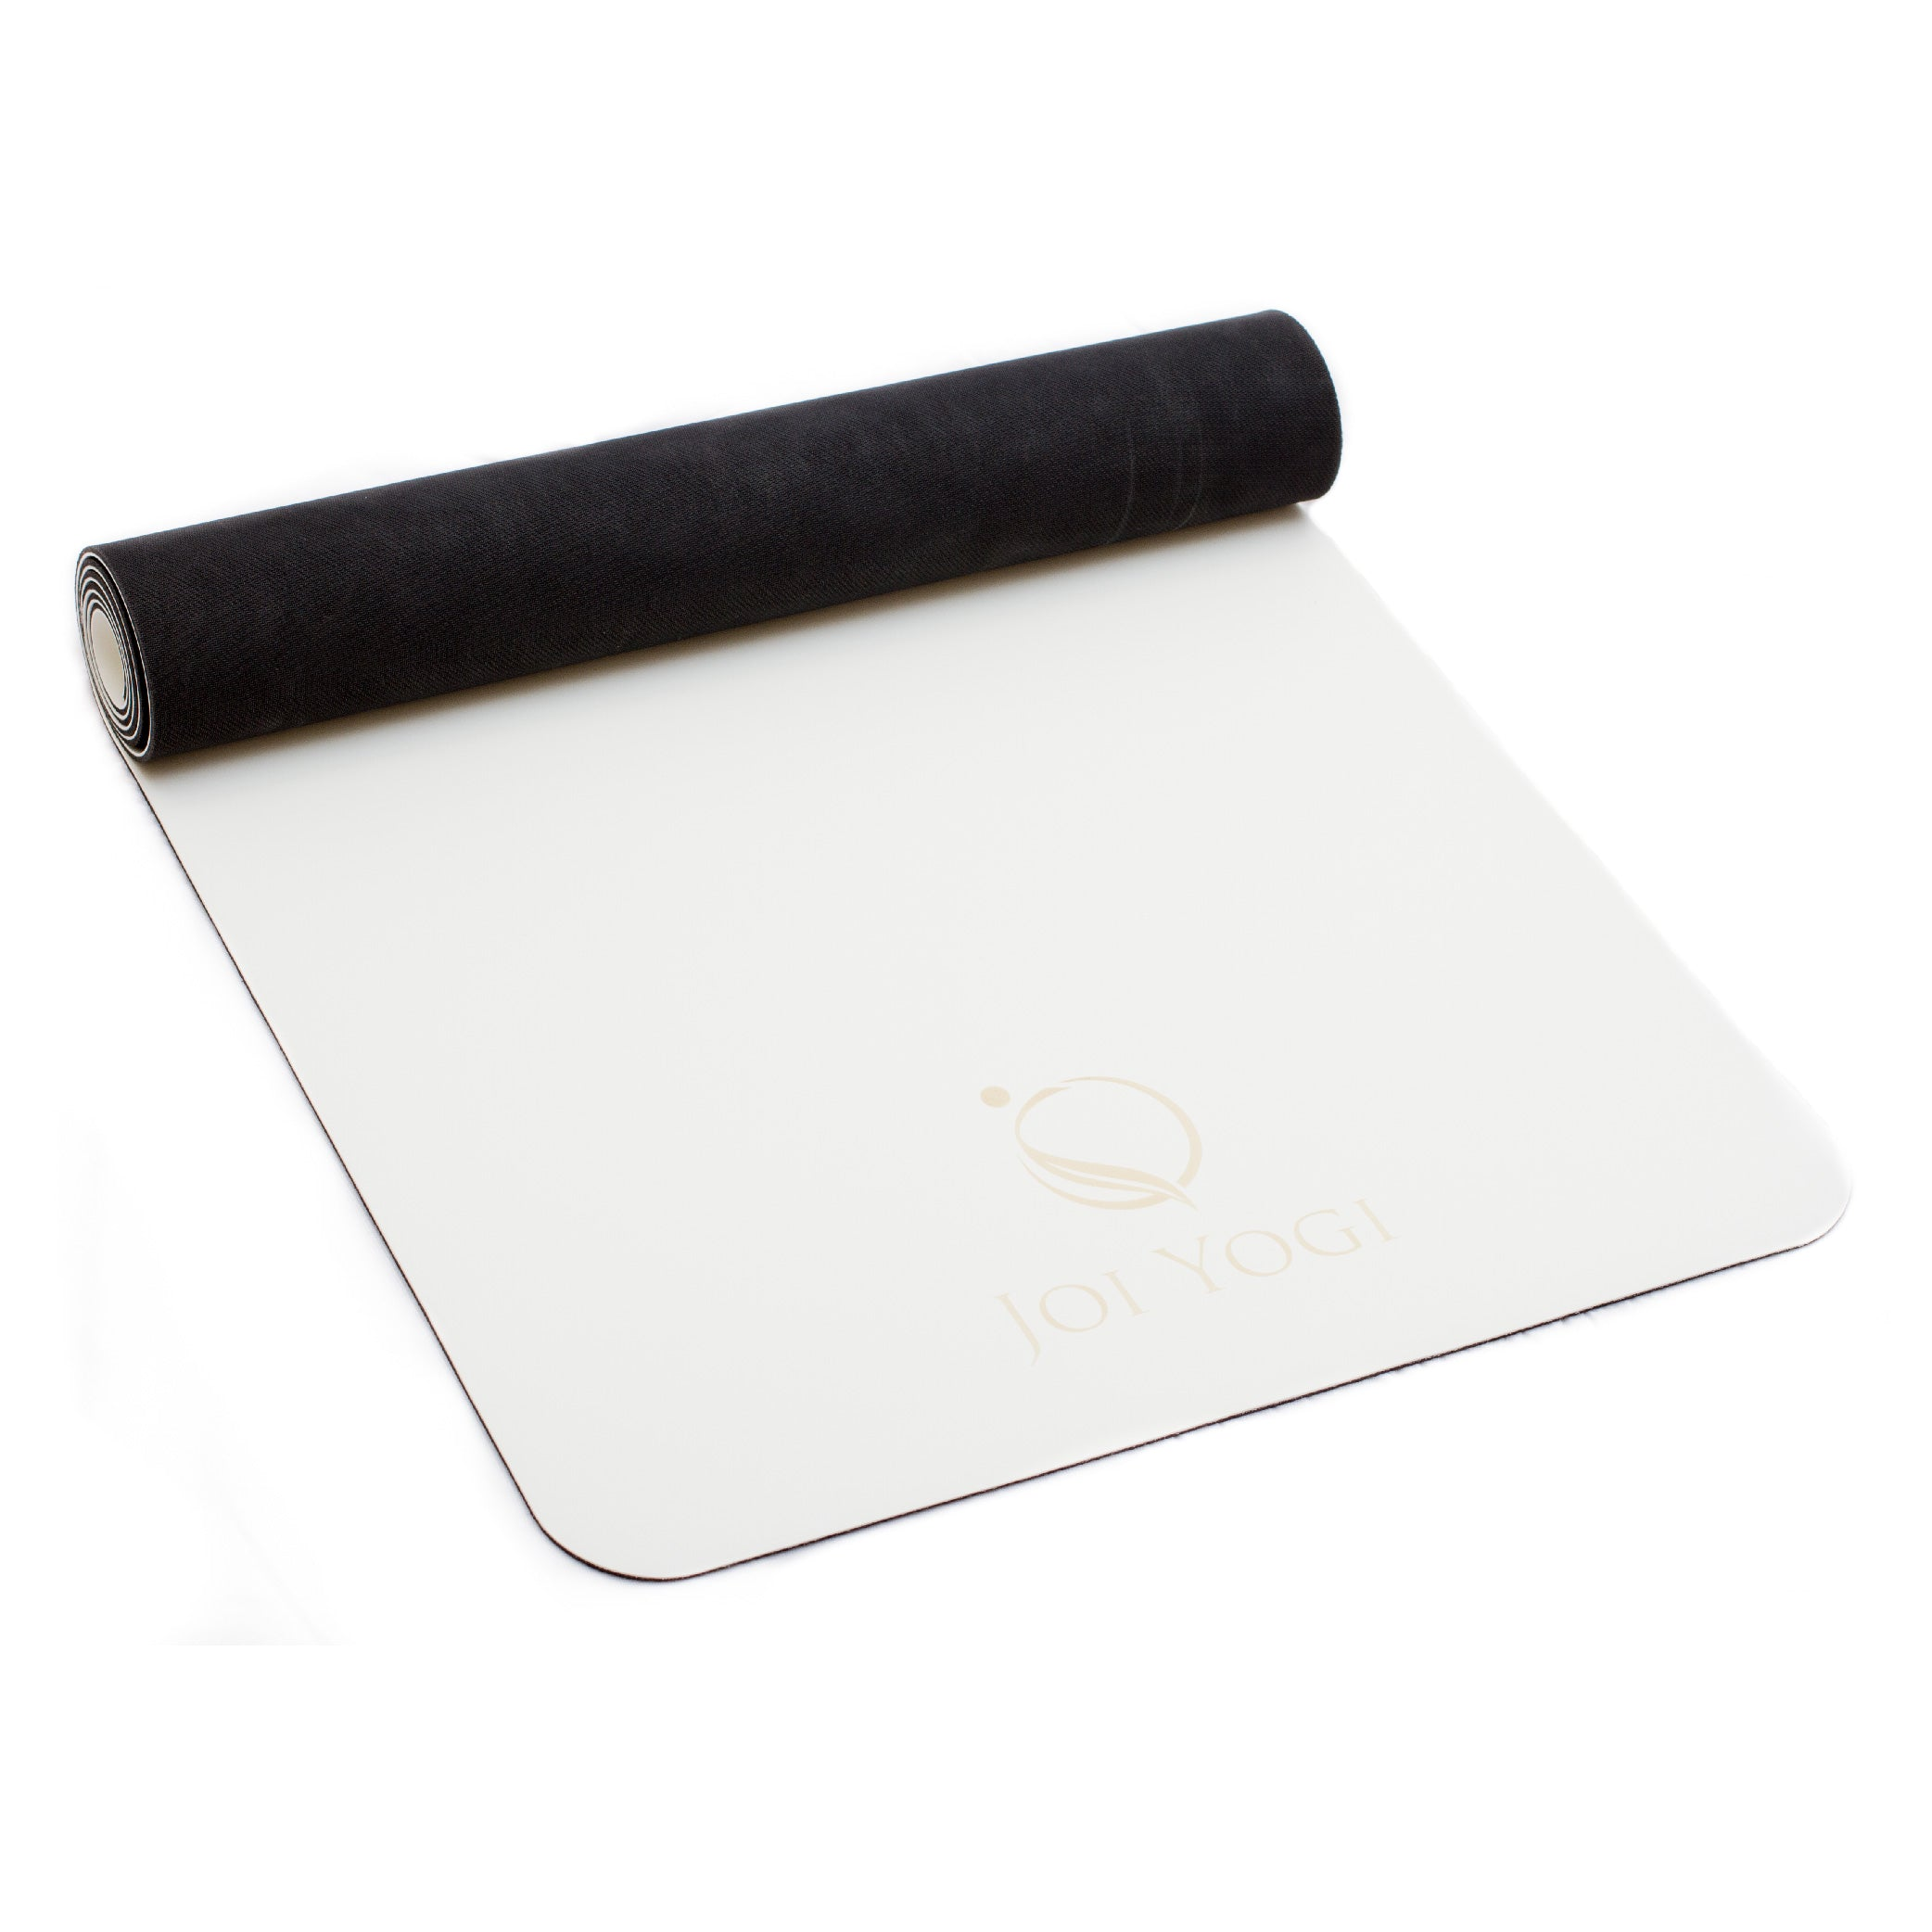 Joi Yogi Ultra Grip Yoga Mat White In This Together Sale 50 Off